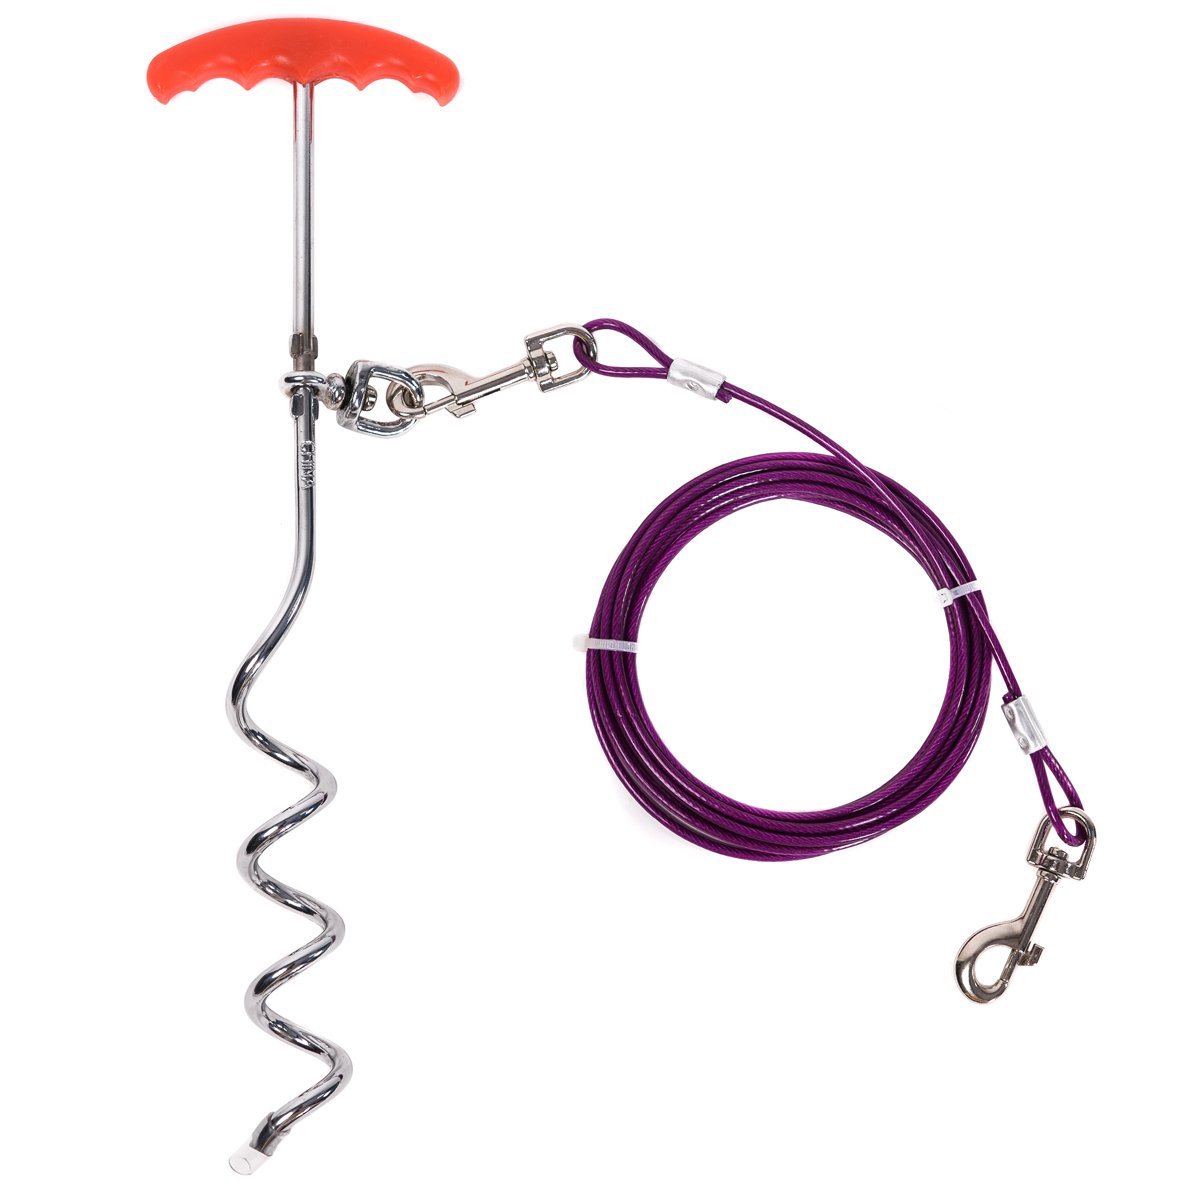 Favorite 16-inch Spiral Stake with 15-feet Tie Out Cable for Large Medium Dogs Outdoors, Camping and Garden by Favorite